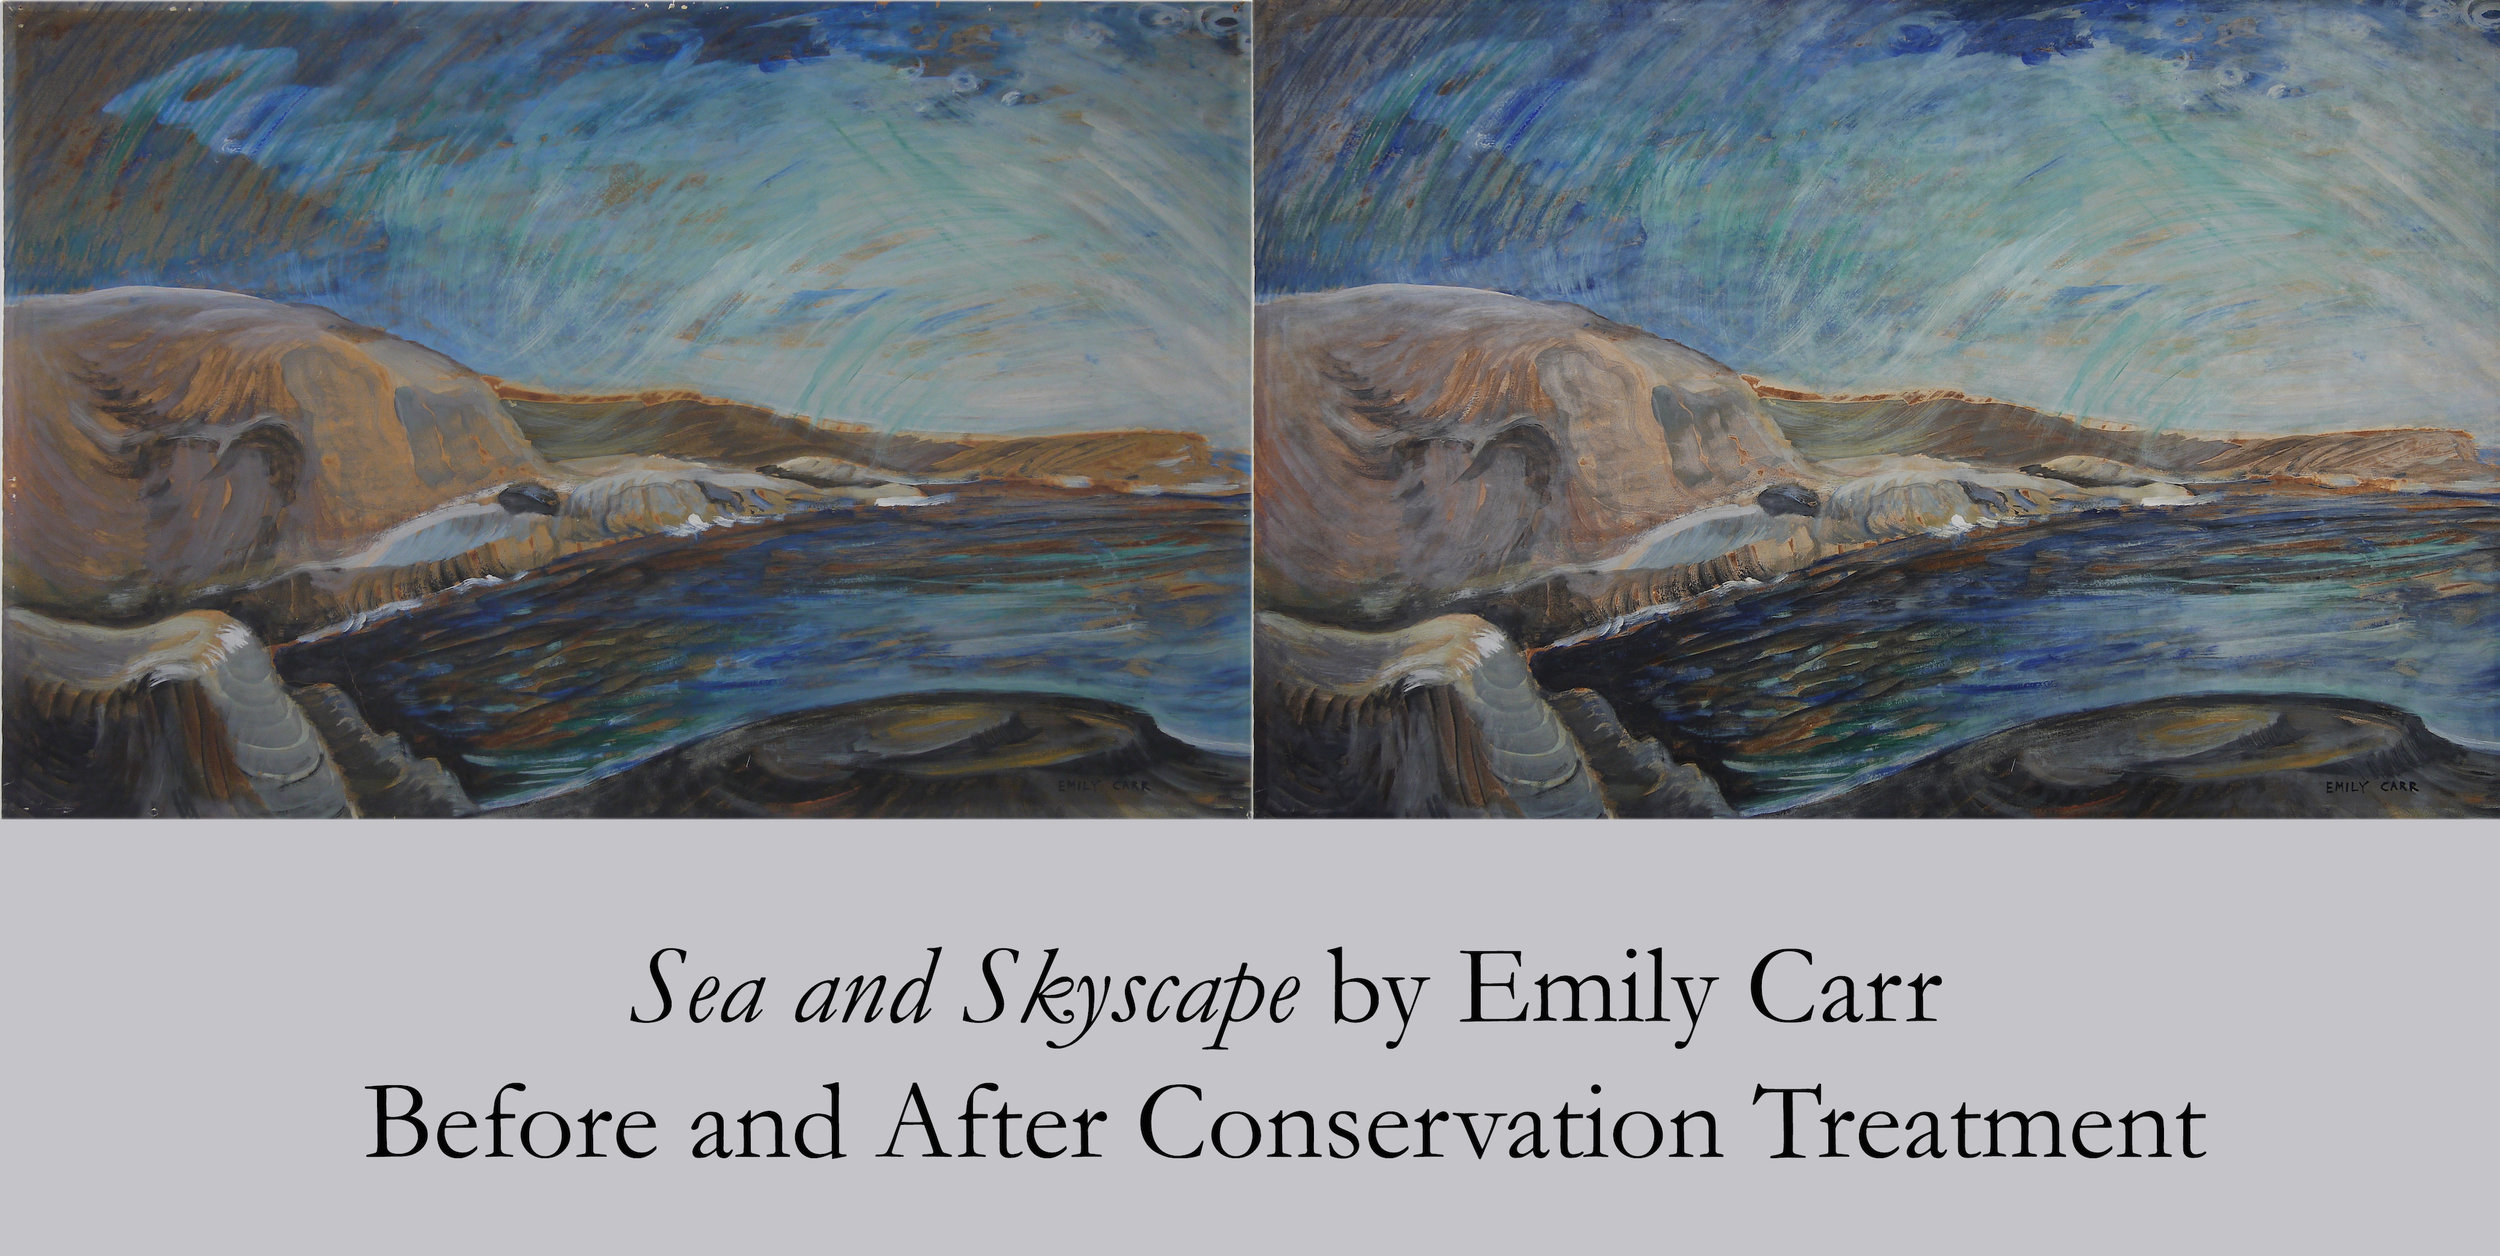 Sea and Skyscape by Emily Carr - Before and After Conservation Treatment